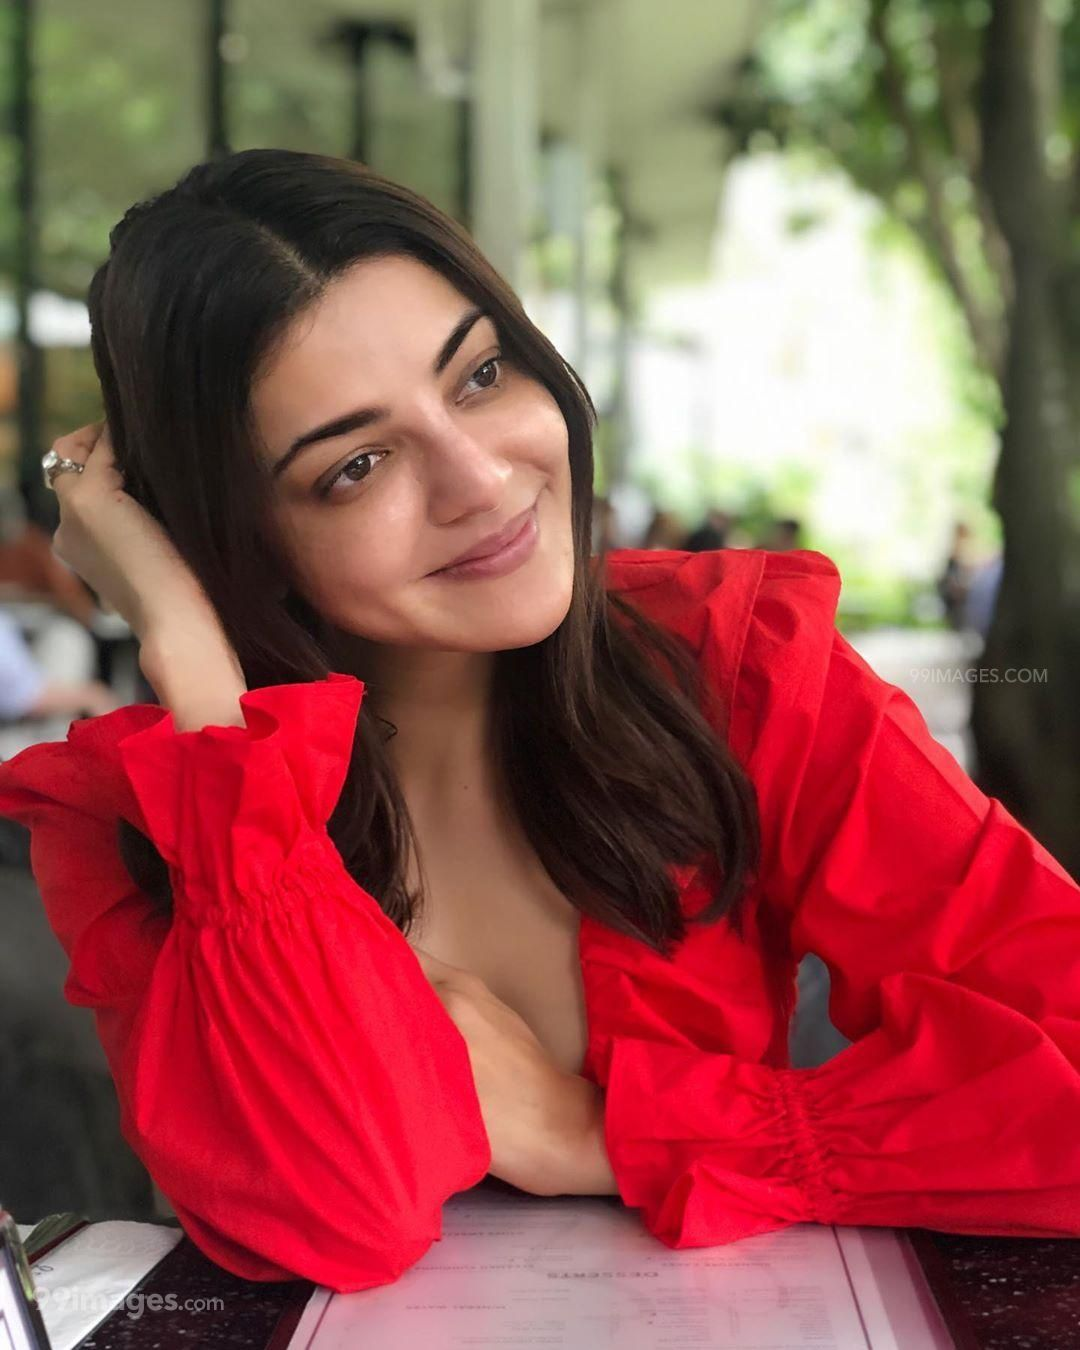 Kajal Agarwal Latest Hot HD Photoshoot Photos / Wallpapers in Saree, WhatsApp DP (1080p) (306589) - Kajal Agarwal